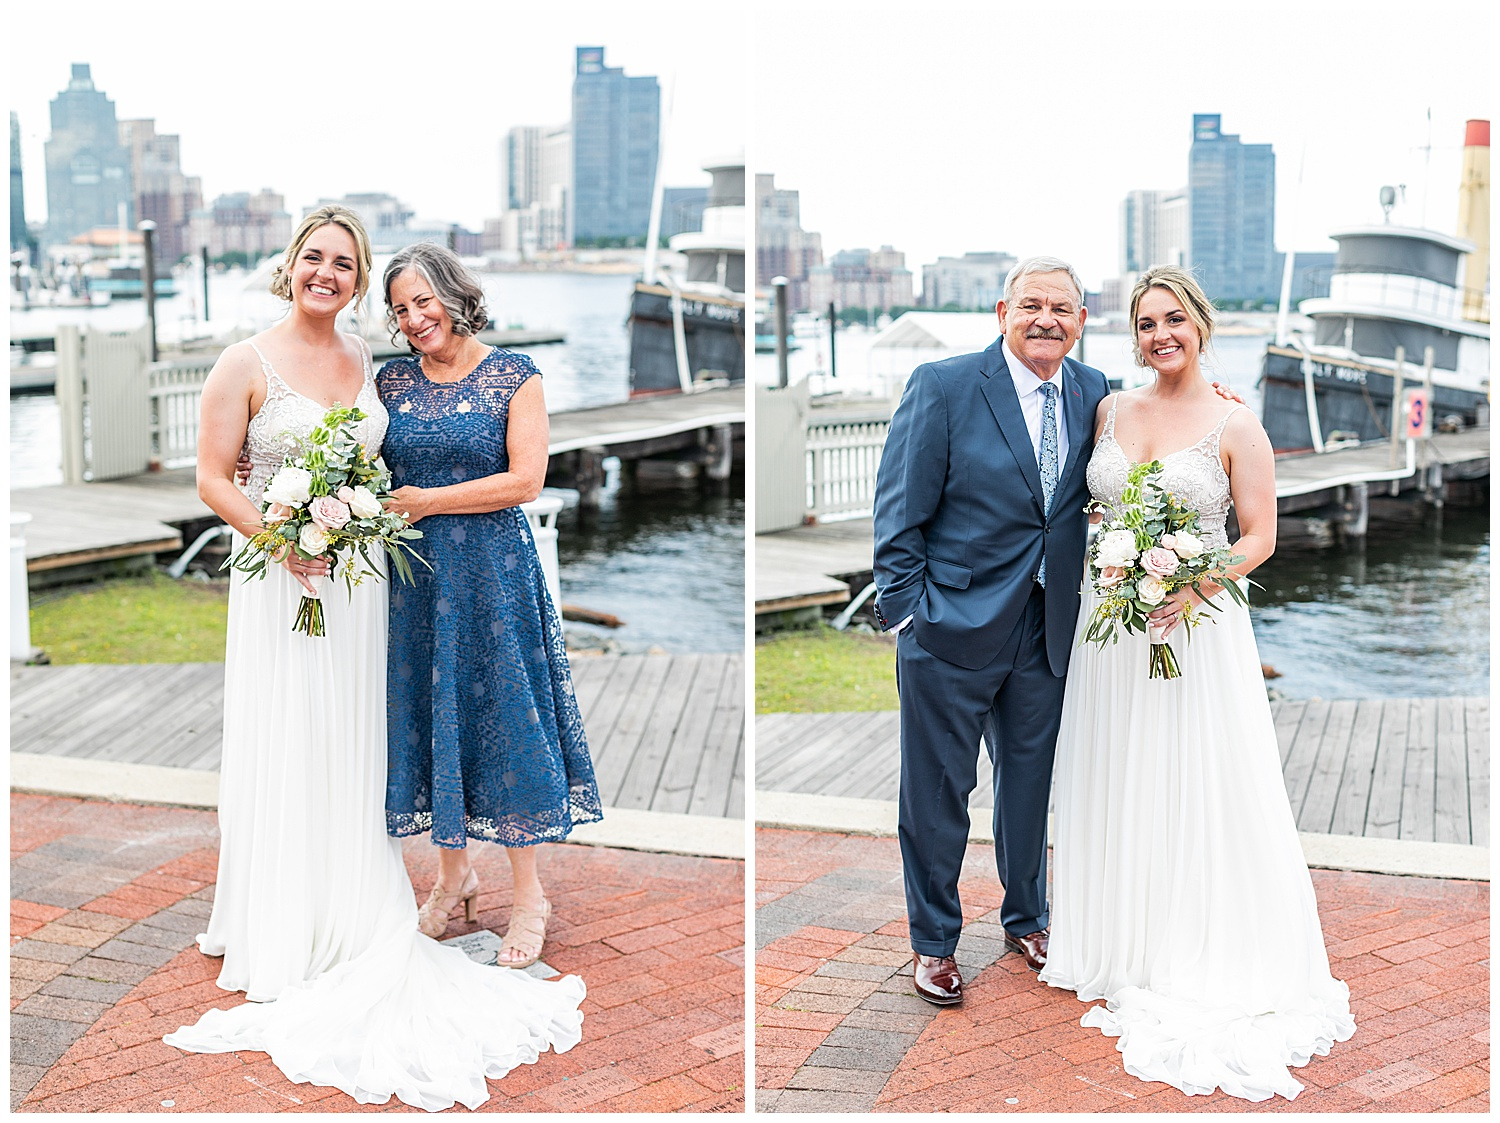 Jenn Brent Baltimore Museum of Industry Wedding Living Radiant Photography photos_0112.jpg